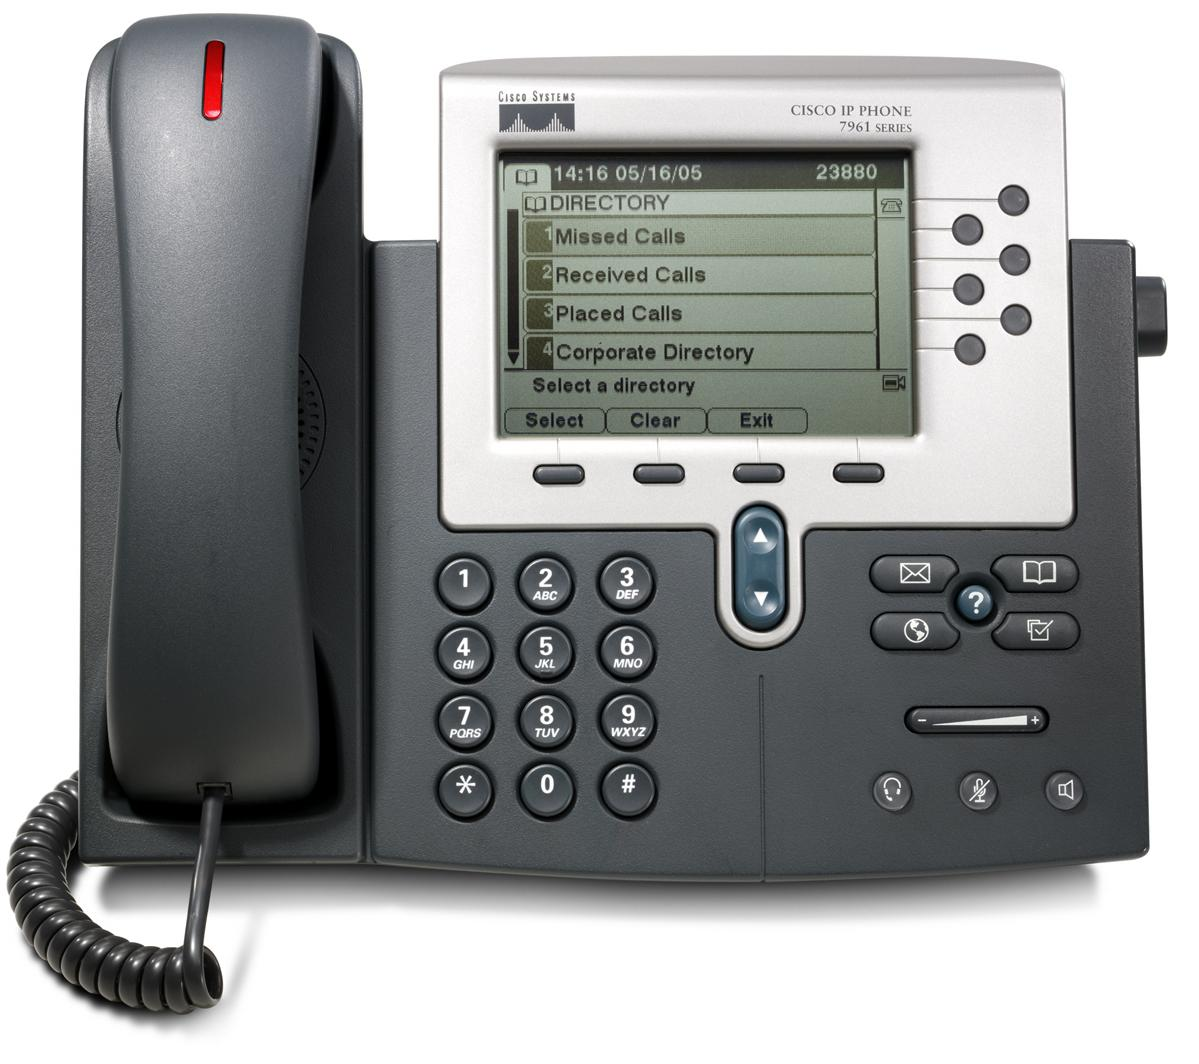 Best Voip Service >> TieTechnology, a Top VoIP Phone Company, and It's Many ...